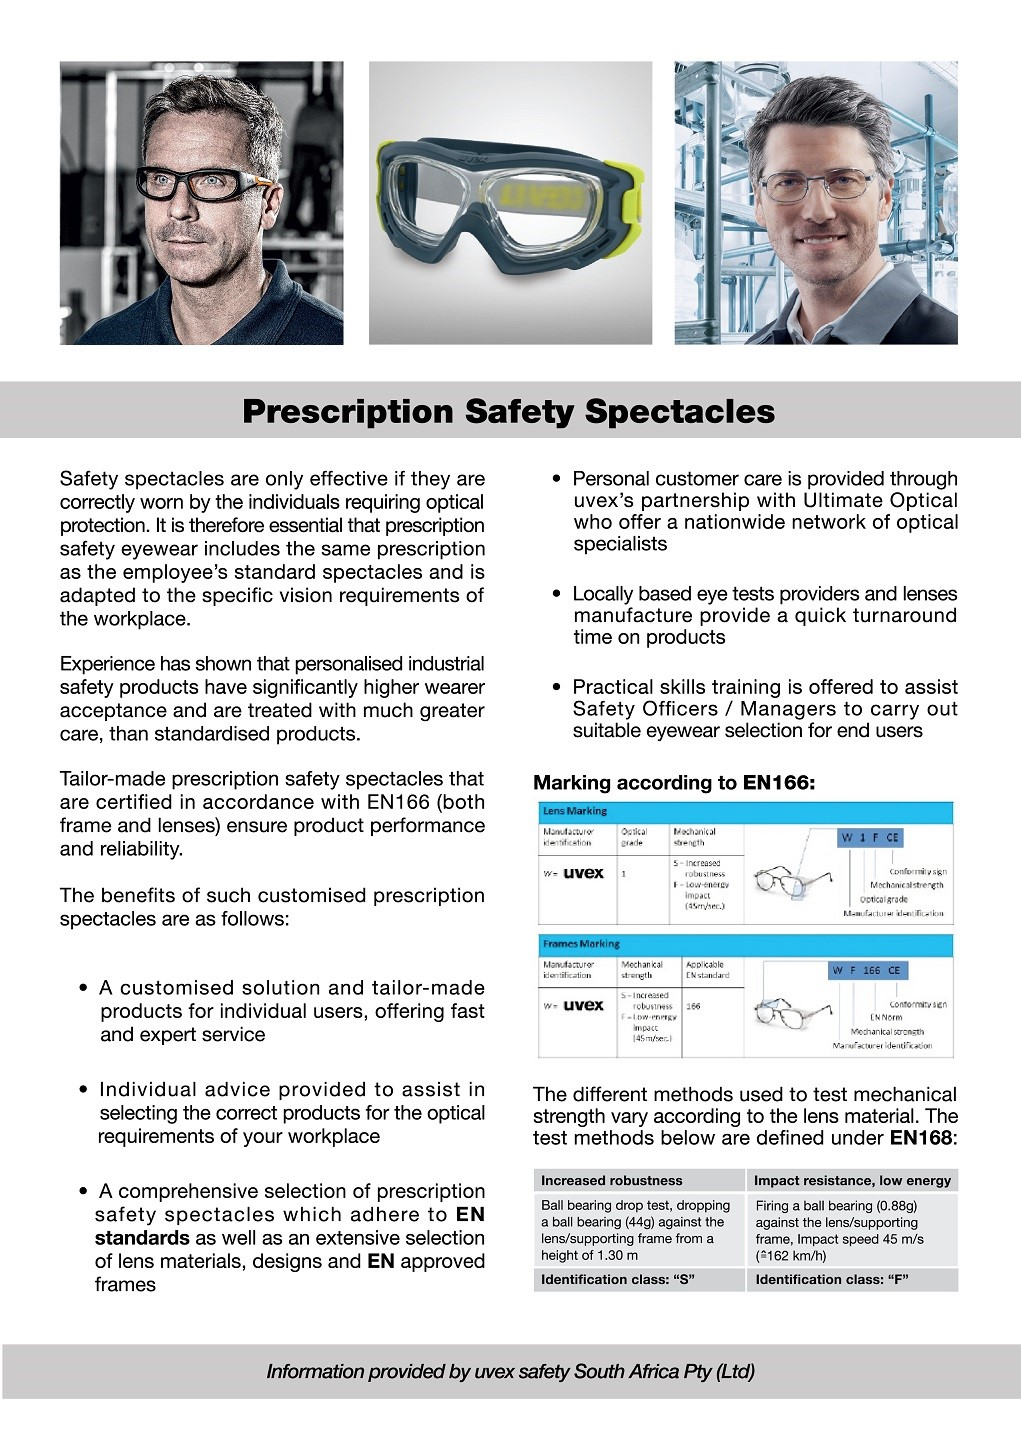 Prescription Safety Eyewear